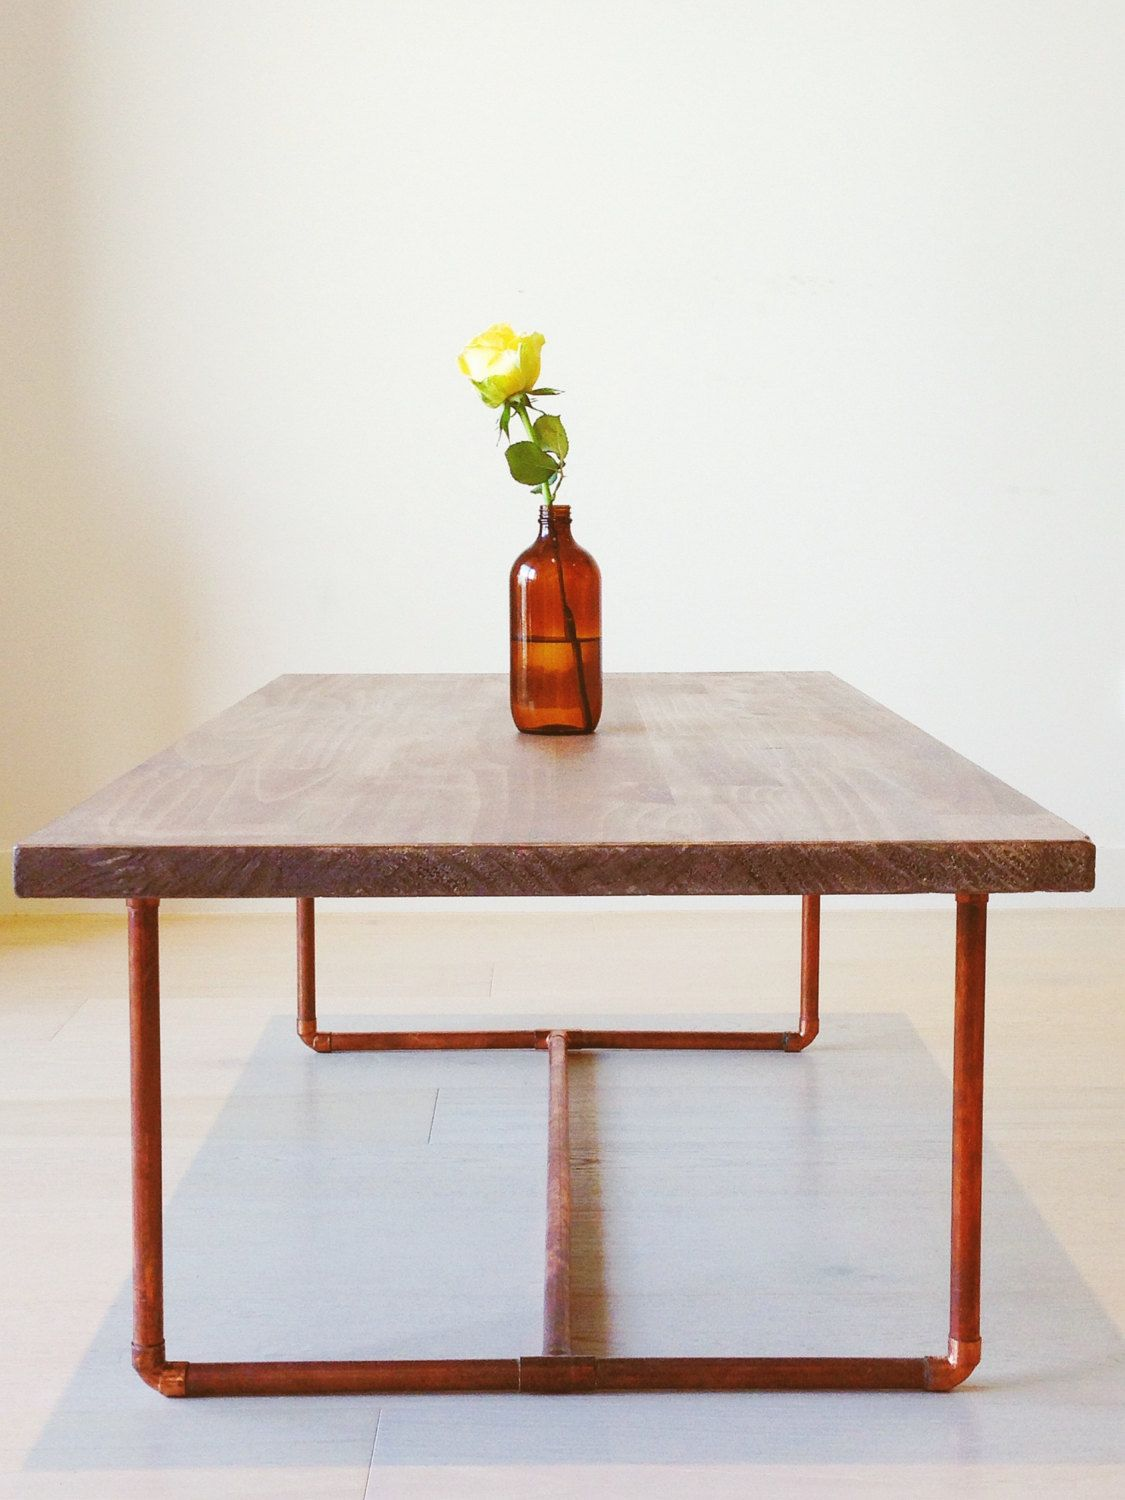 Copper Pipe Coffee Table By Pandcfurniture On Etsy Https Www